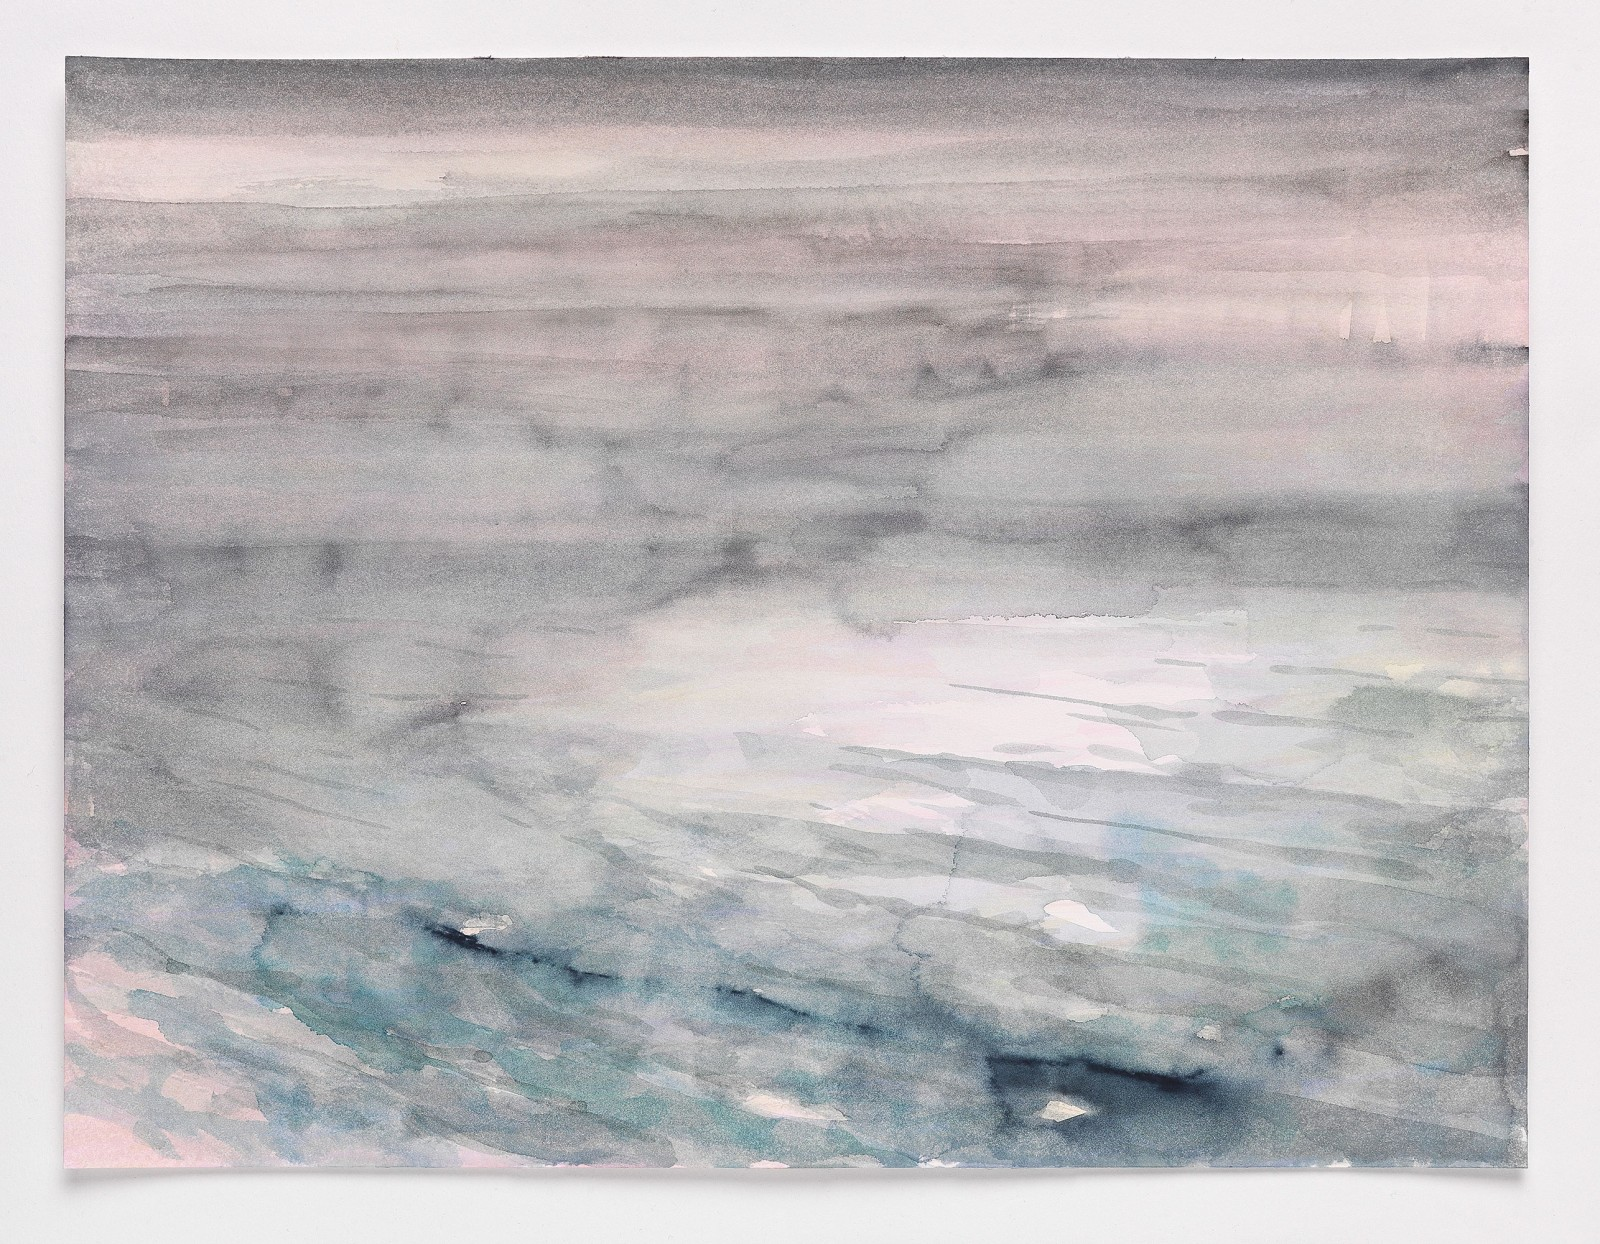 Kim Nekarda: tage am see V, 2014, watercolour on paper, 31 x 41cm, private collection wien